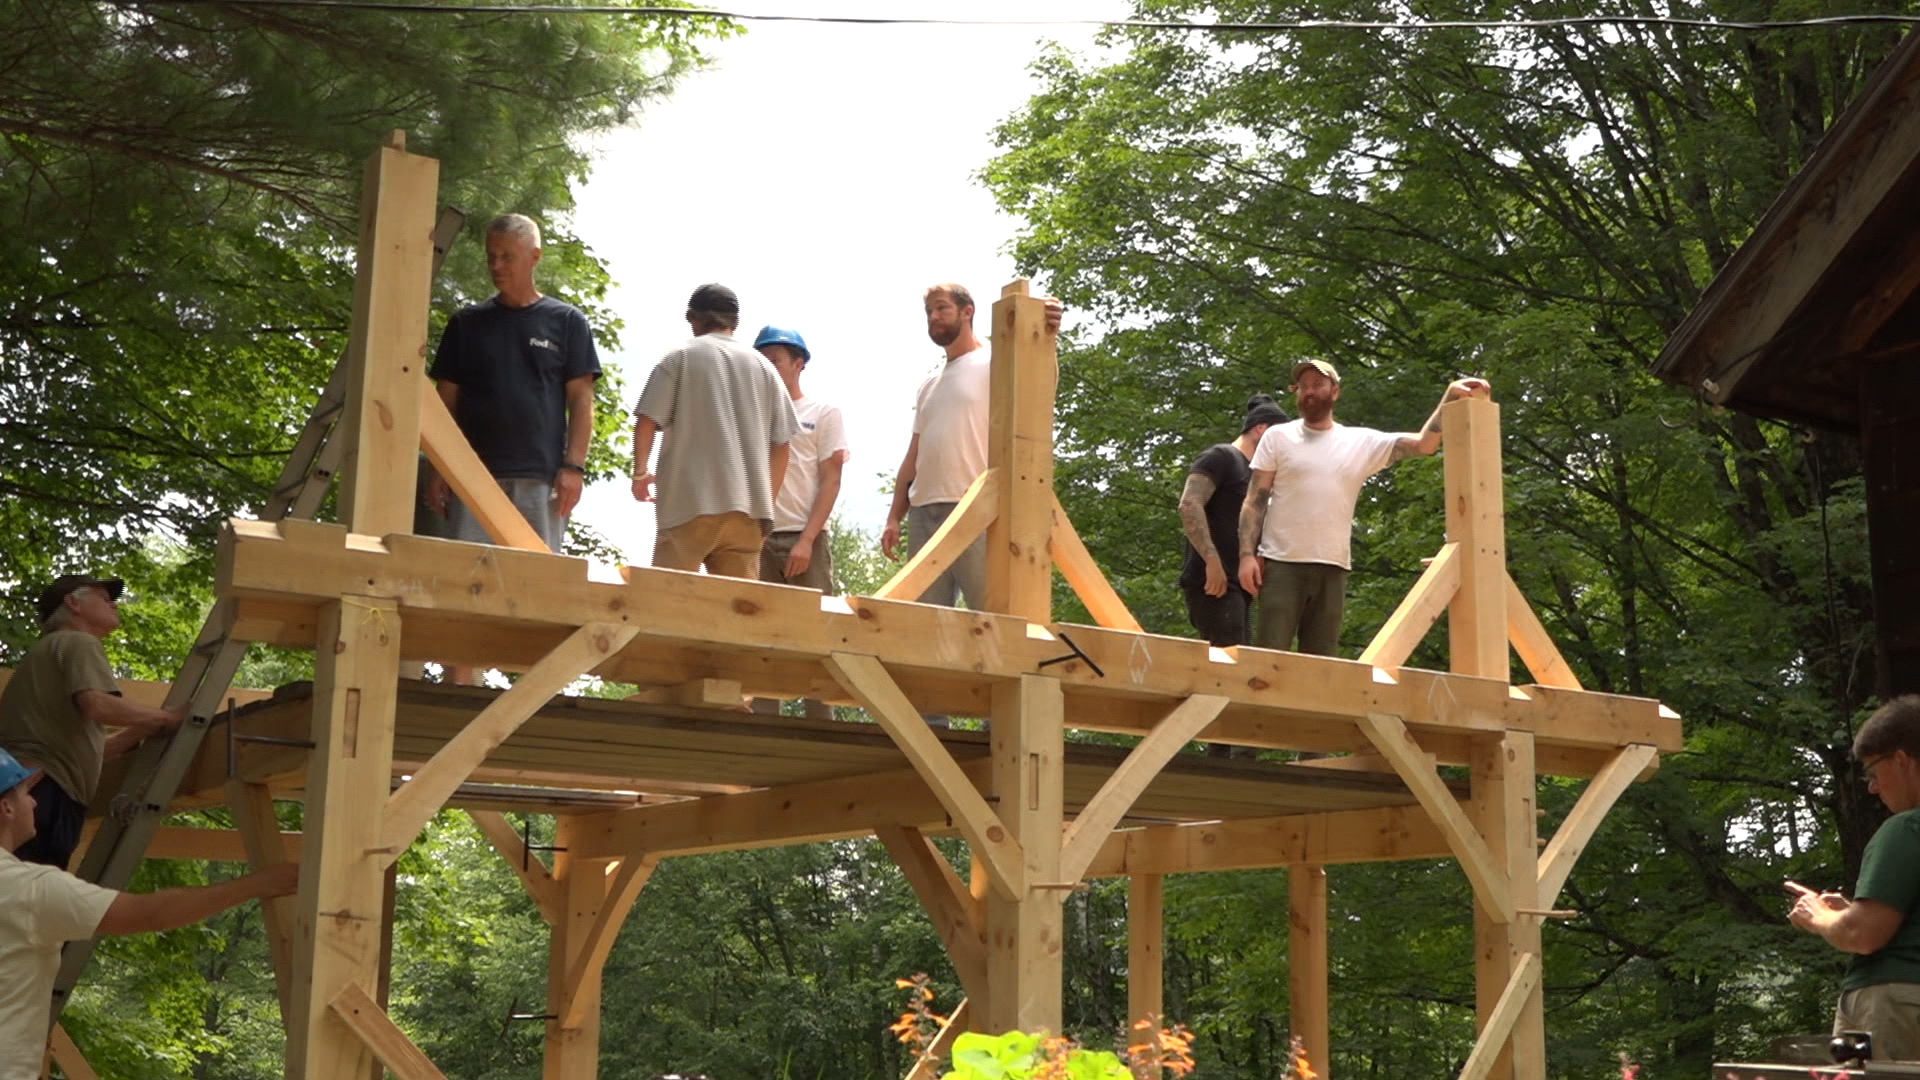 Washington, MA's Heartwood School has trained students in the art of timber framing, a critical part of home building and construction, for over 35 years.